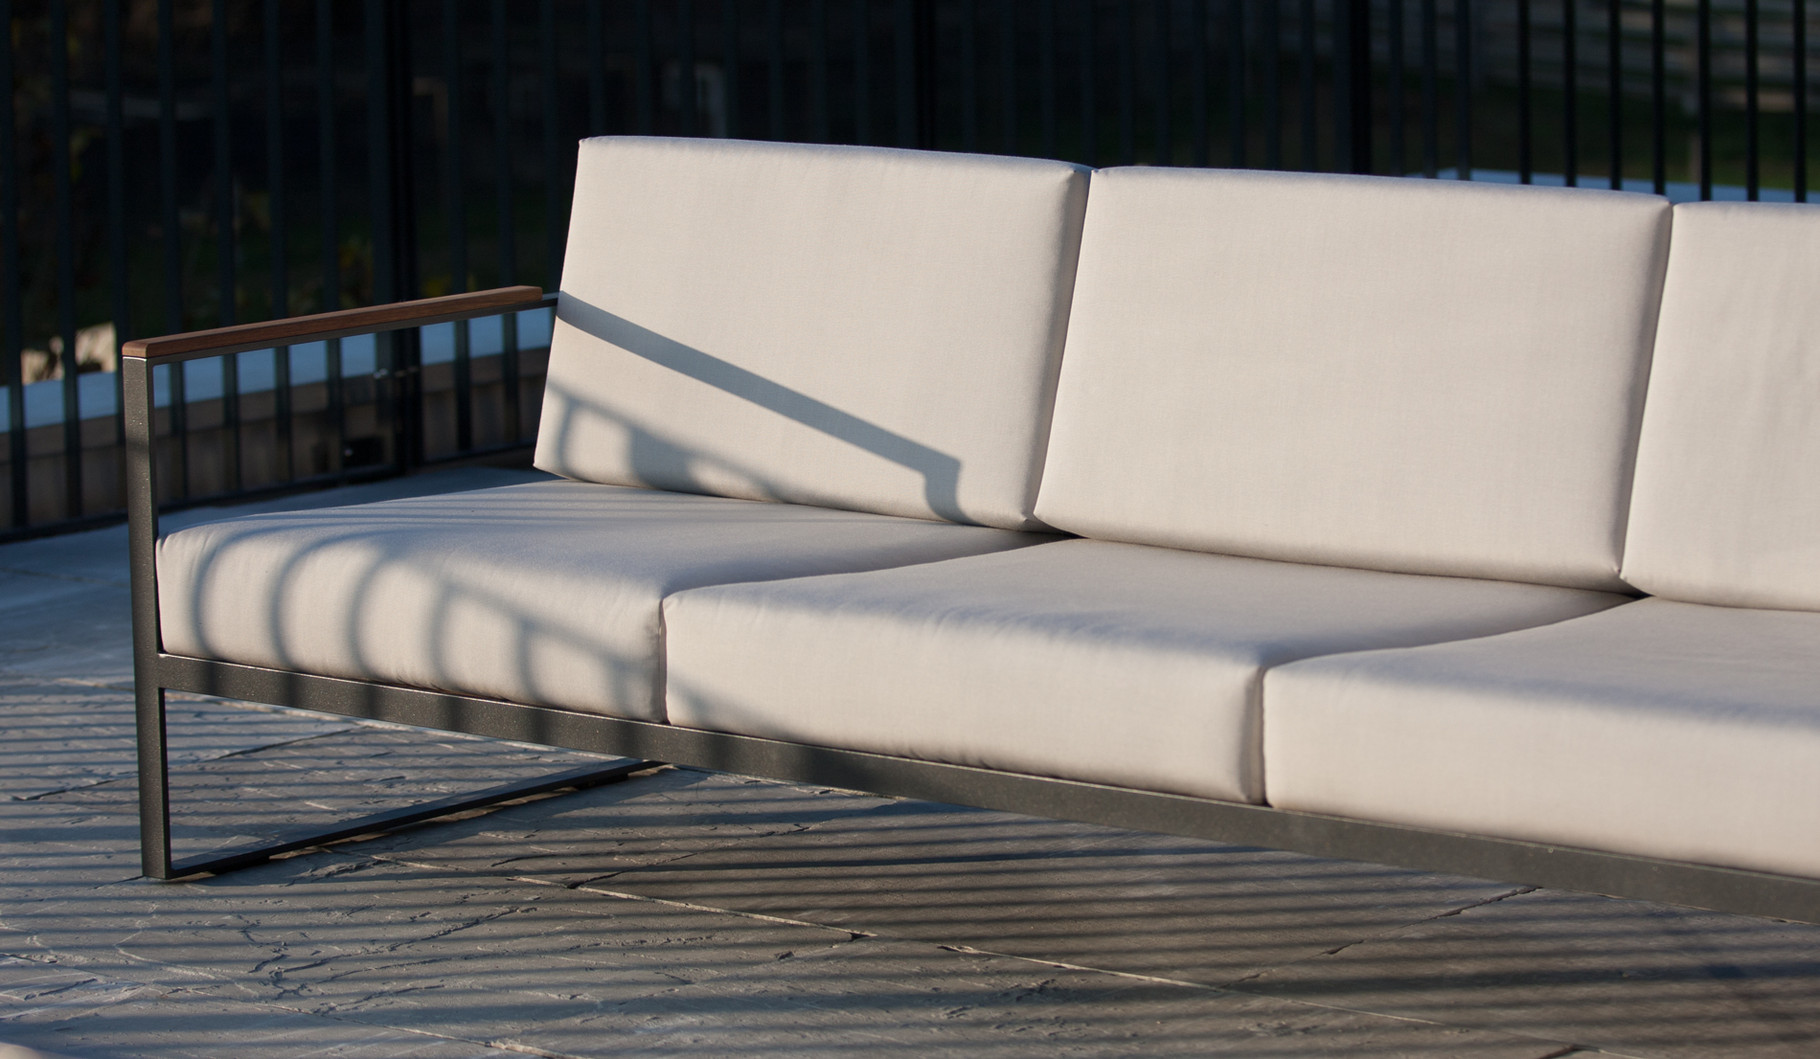 Garten Lounge Design ~ Garten Lounge Chair U2022 Loungemöbel U2022 Design Metall  Lounge Schweiz